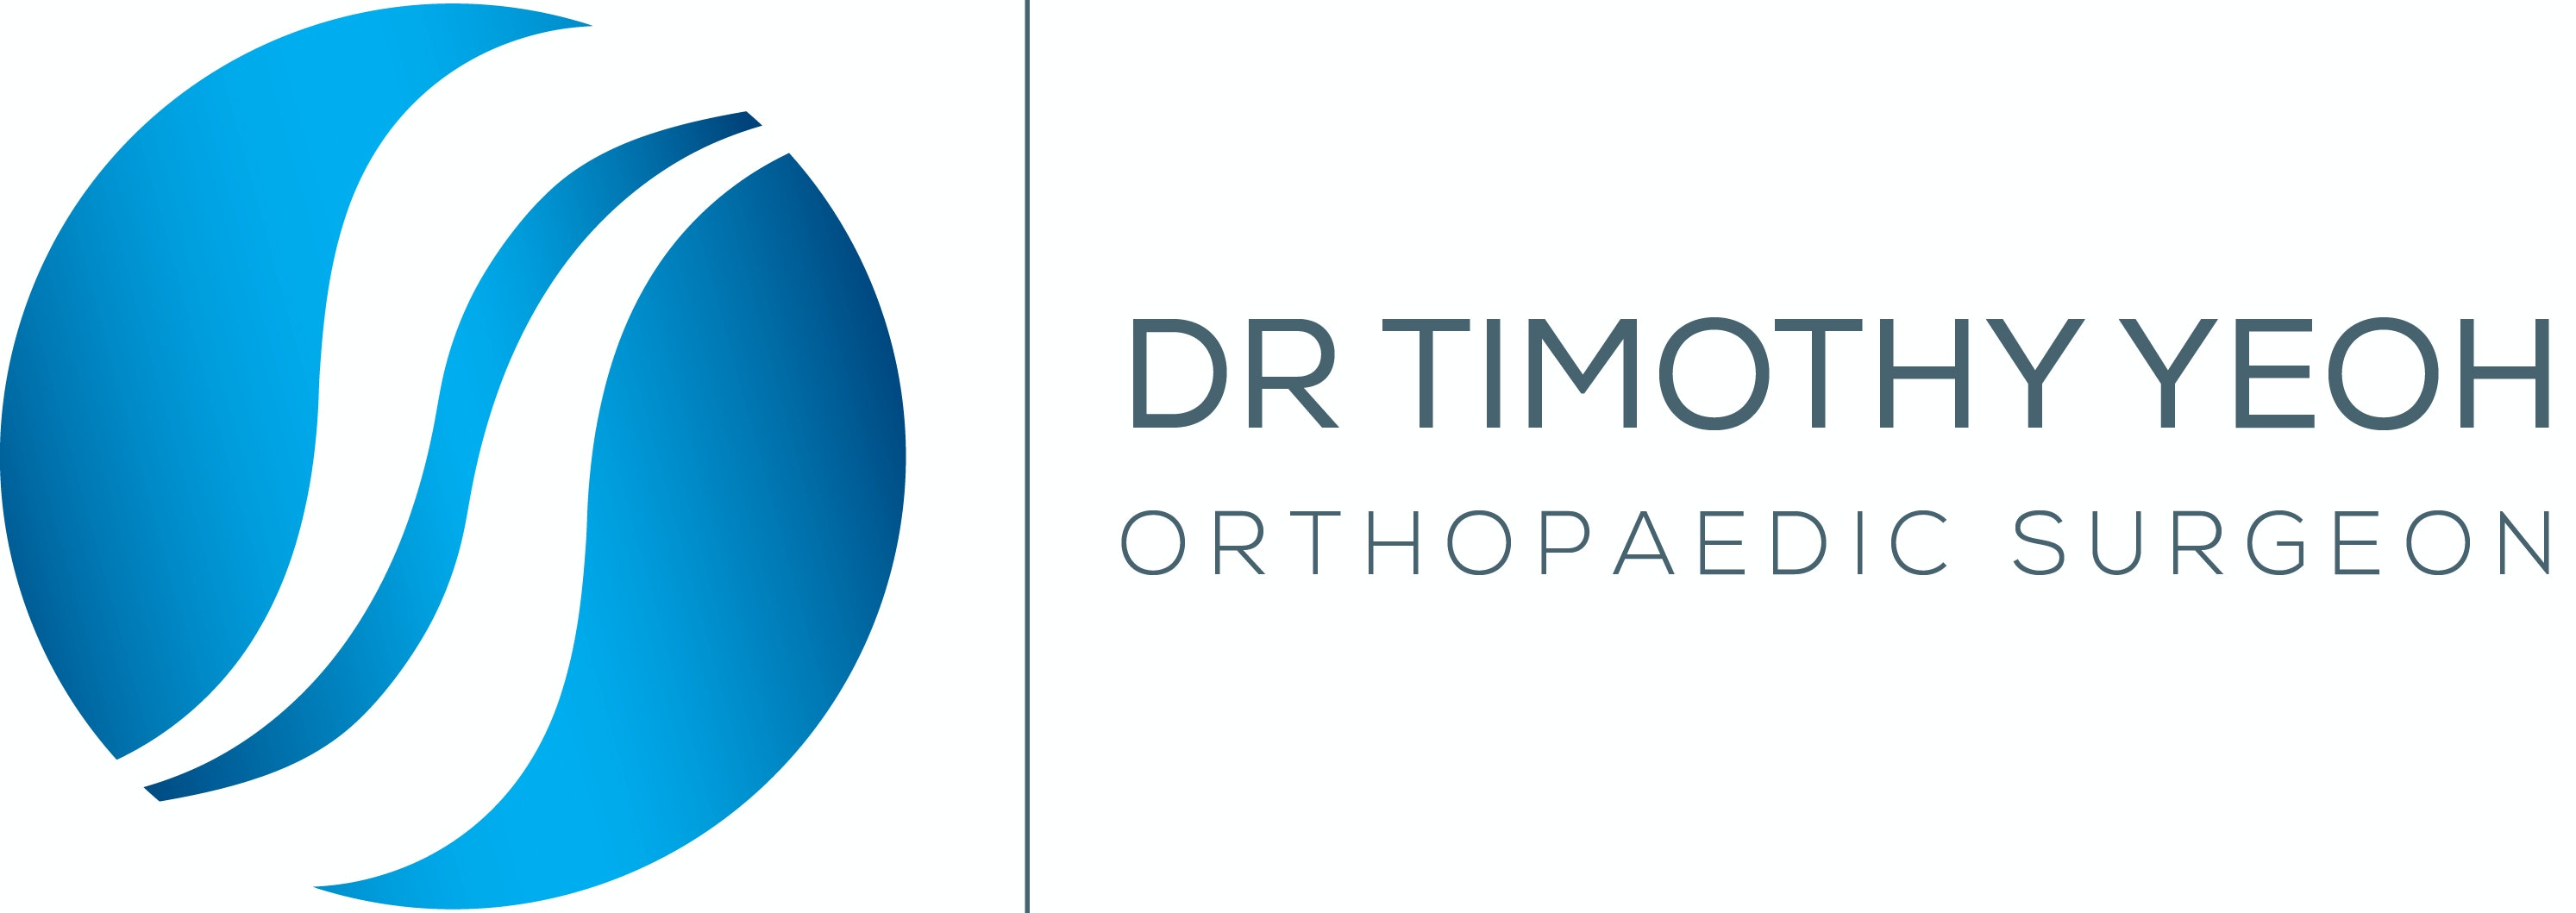 logo for Dr Timothy Yeoh Orthopaedic Surgeons